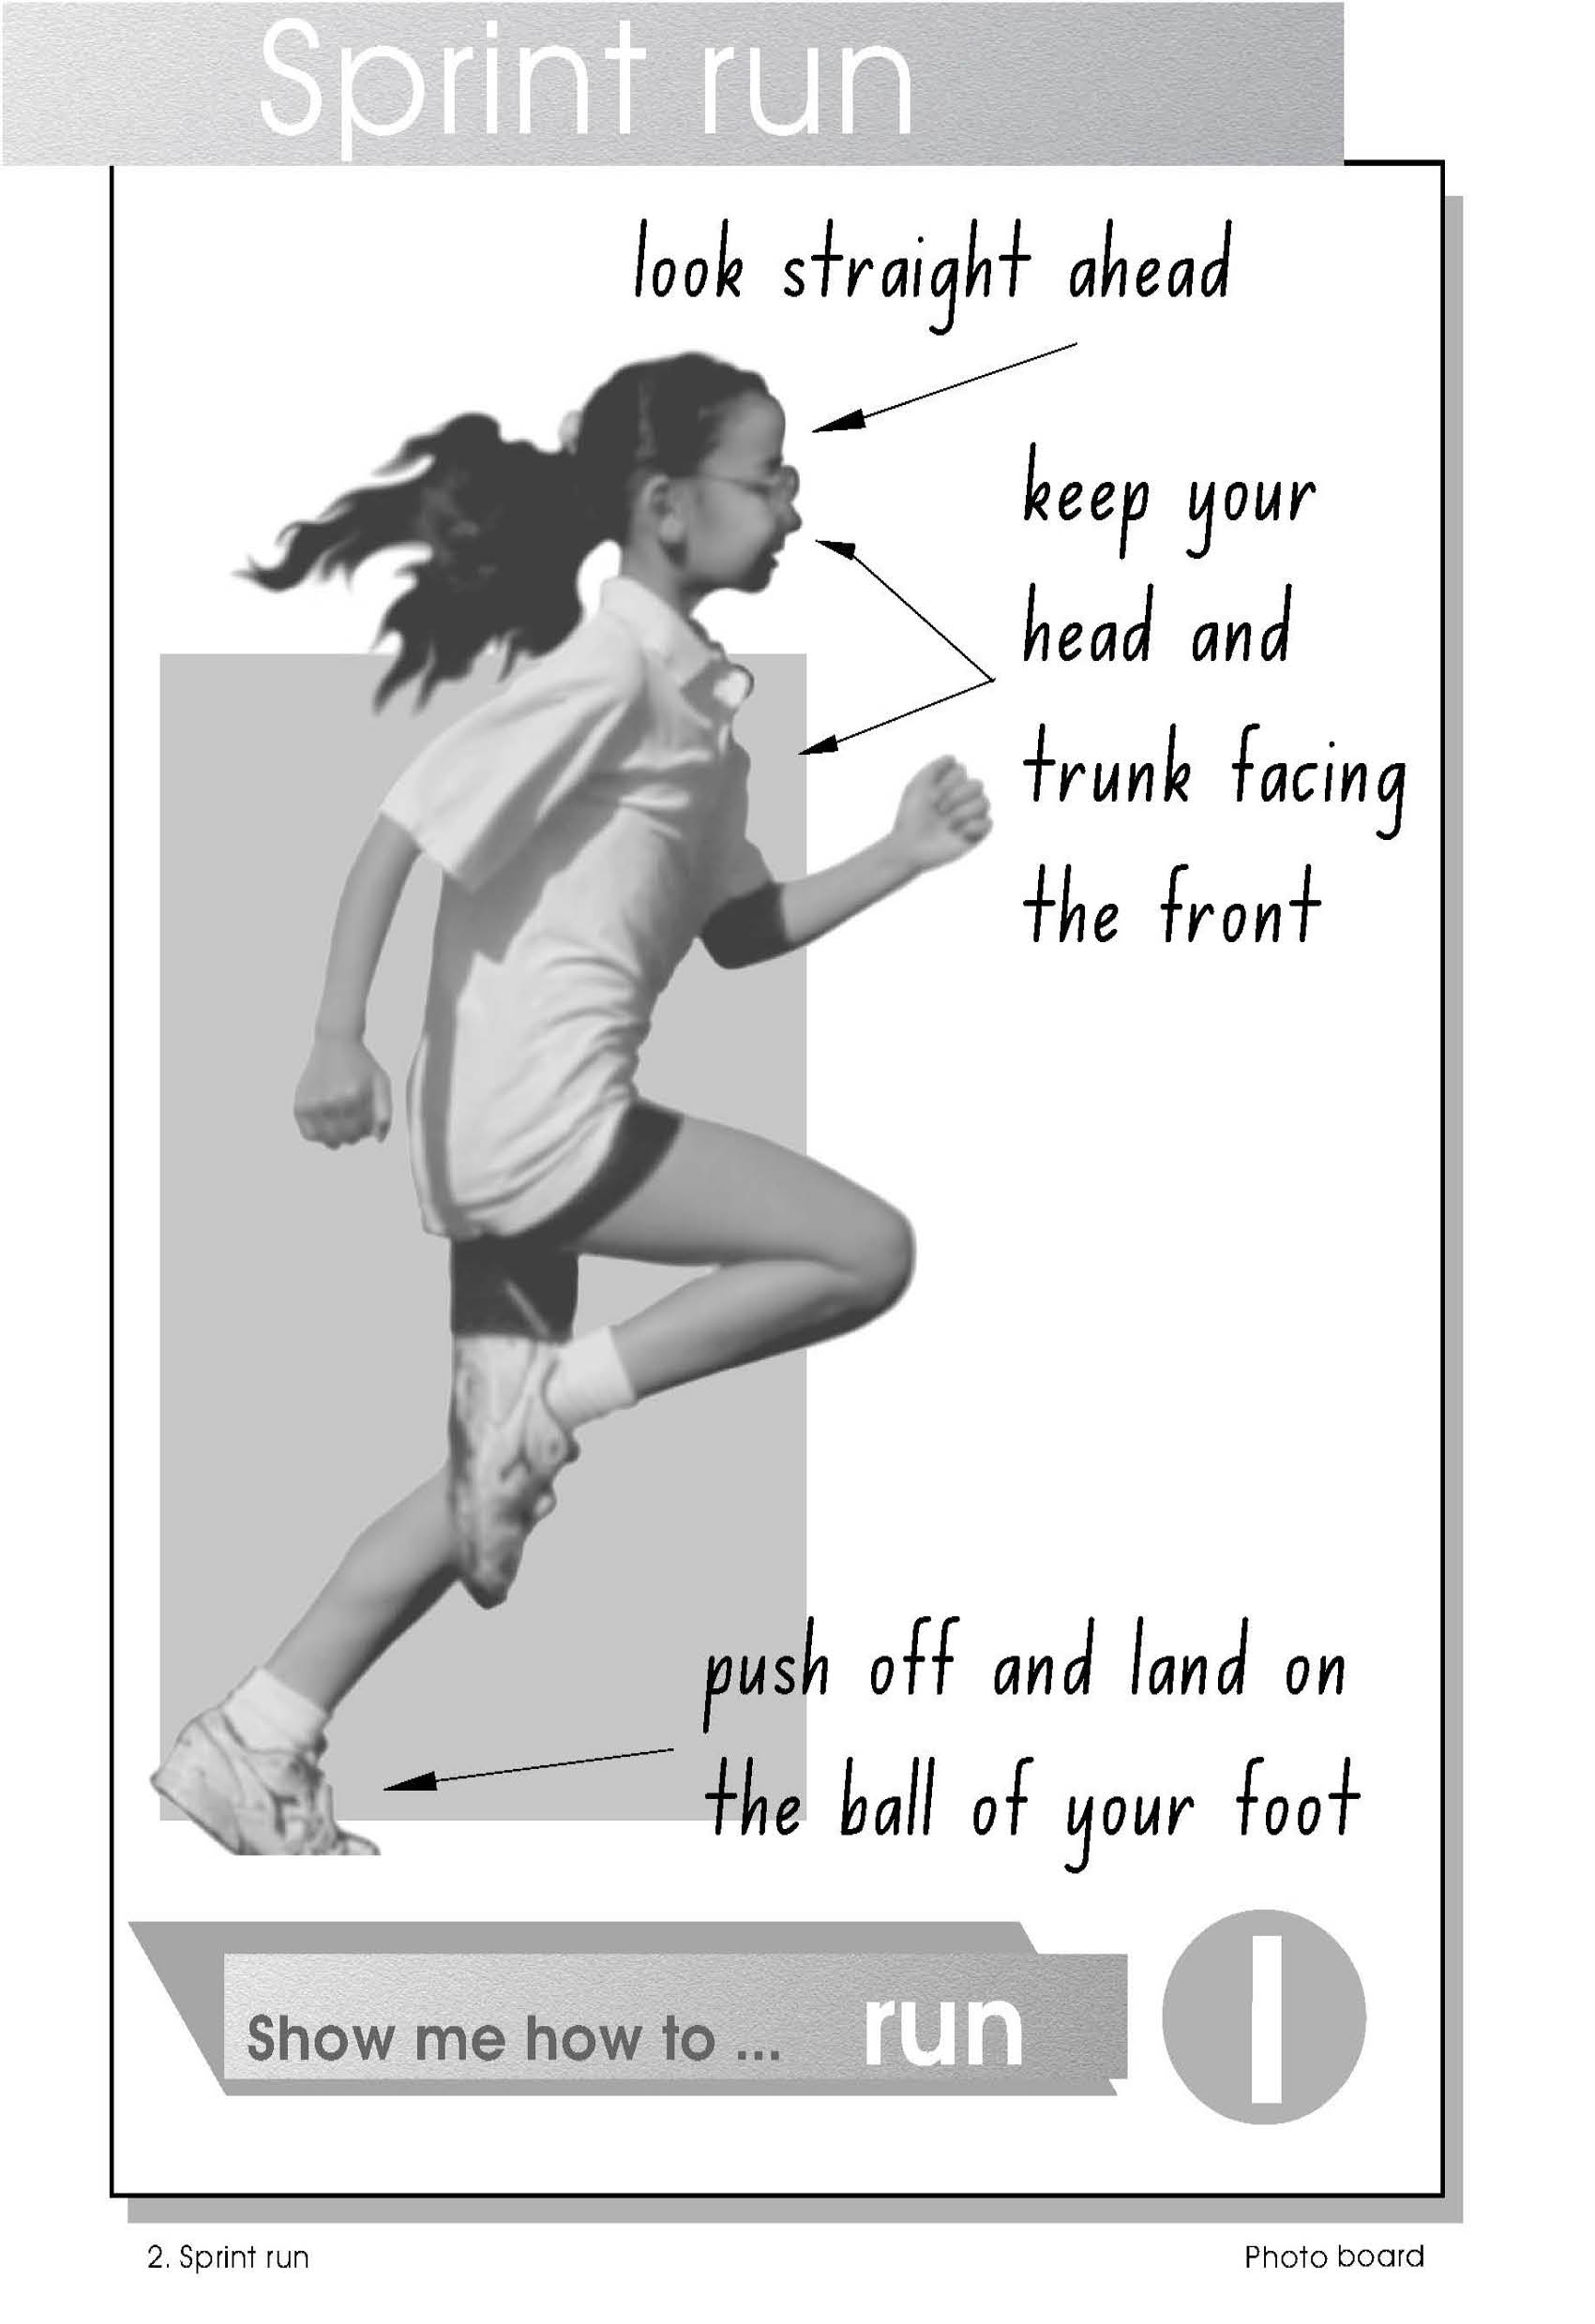 Observational poster - how to run